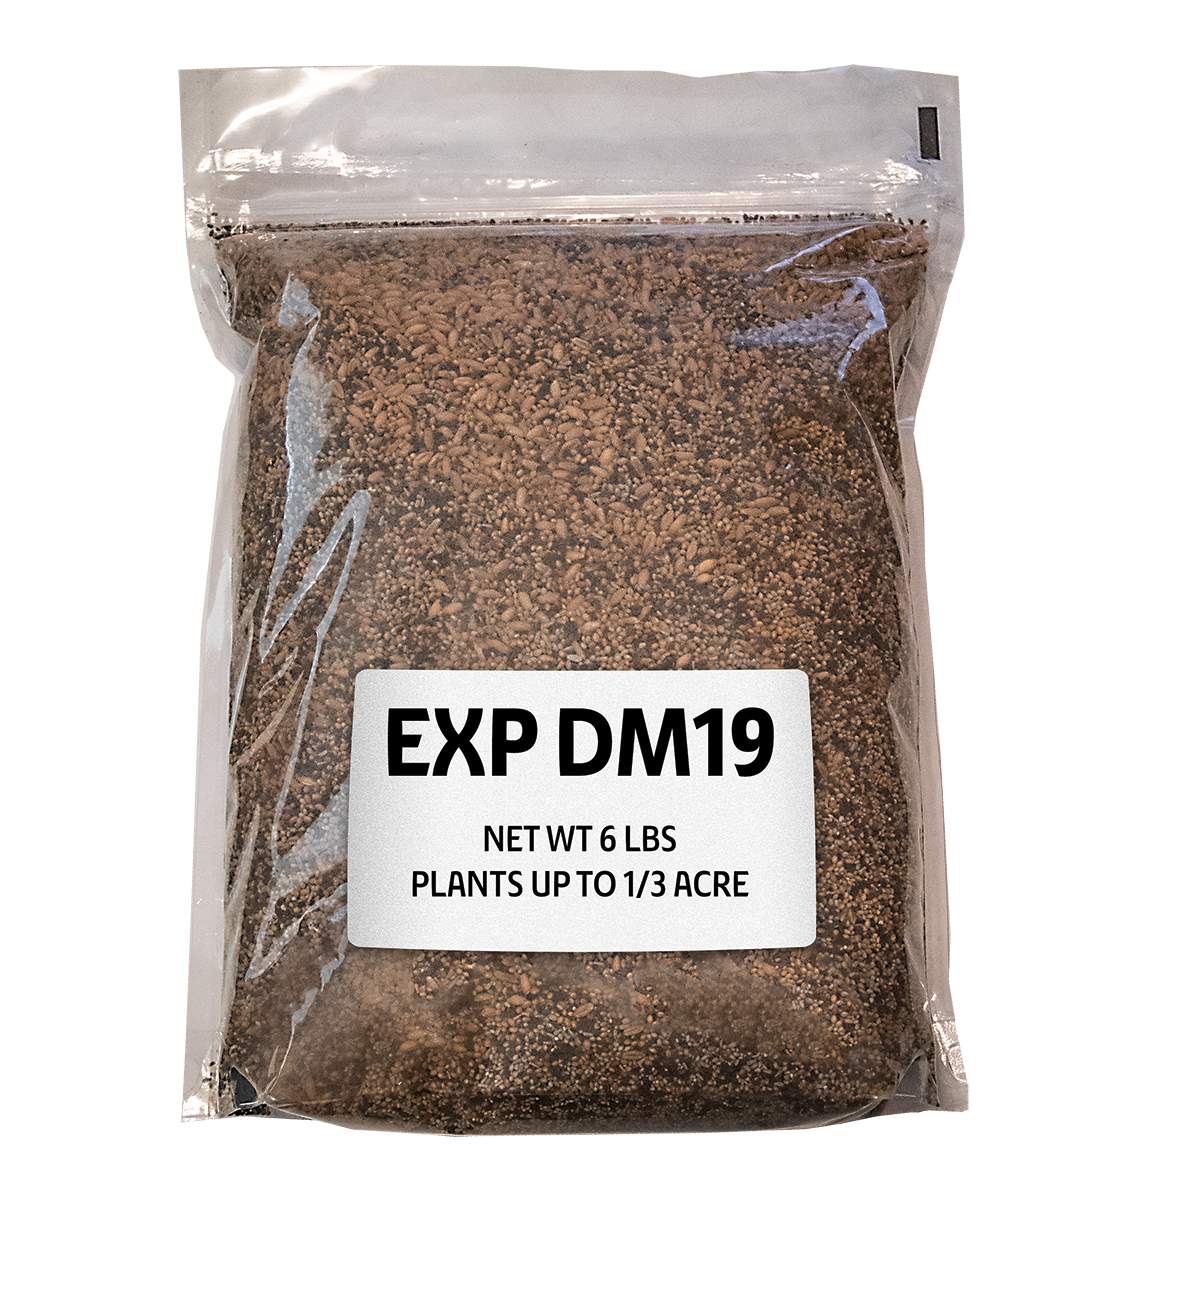 exp-dm19-seed-bag-wlabel.png